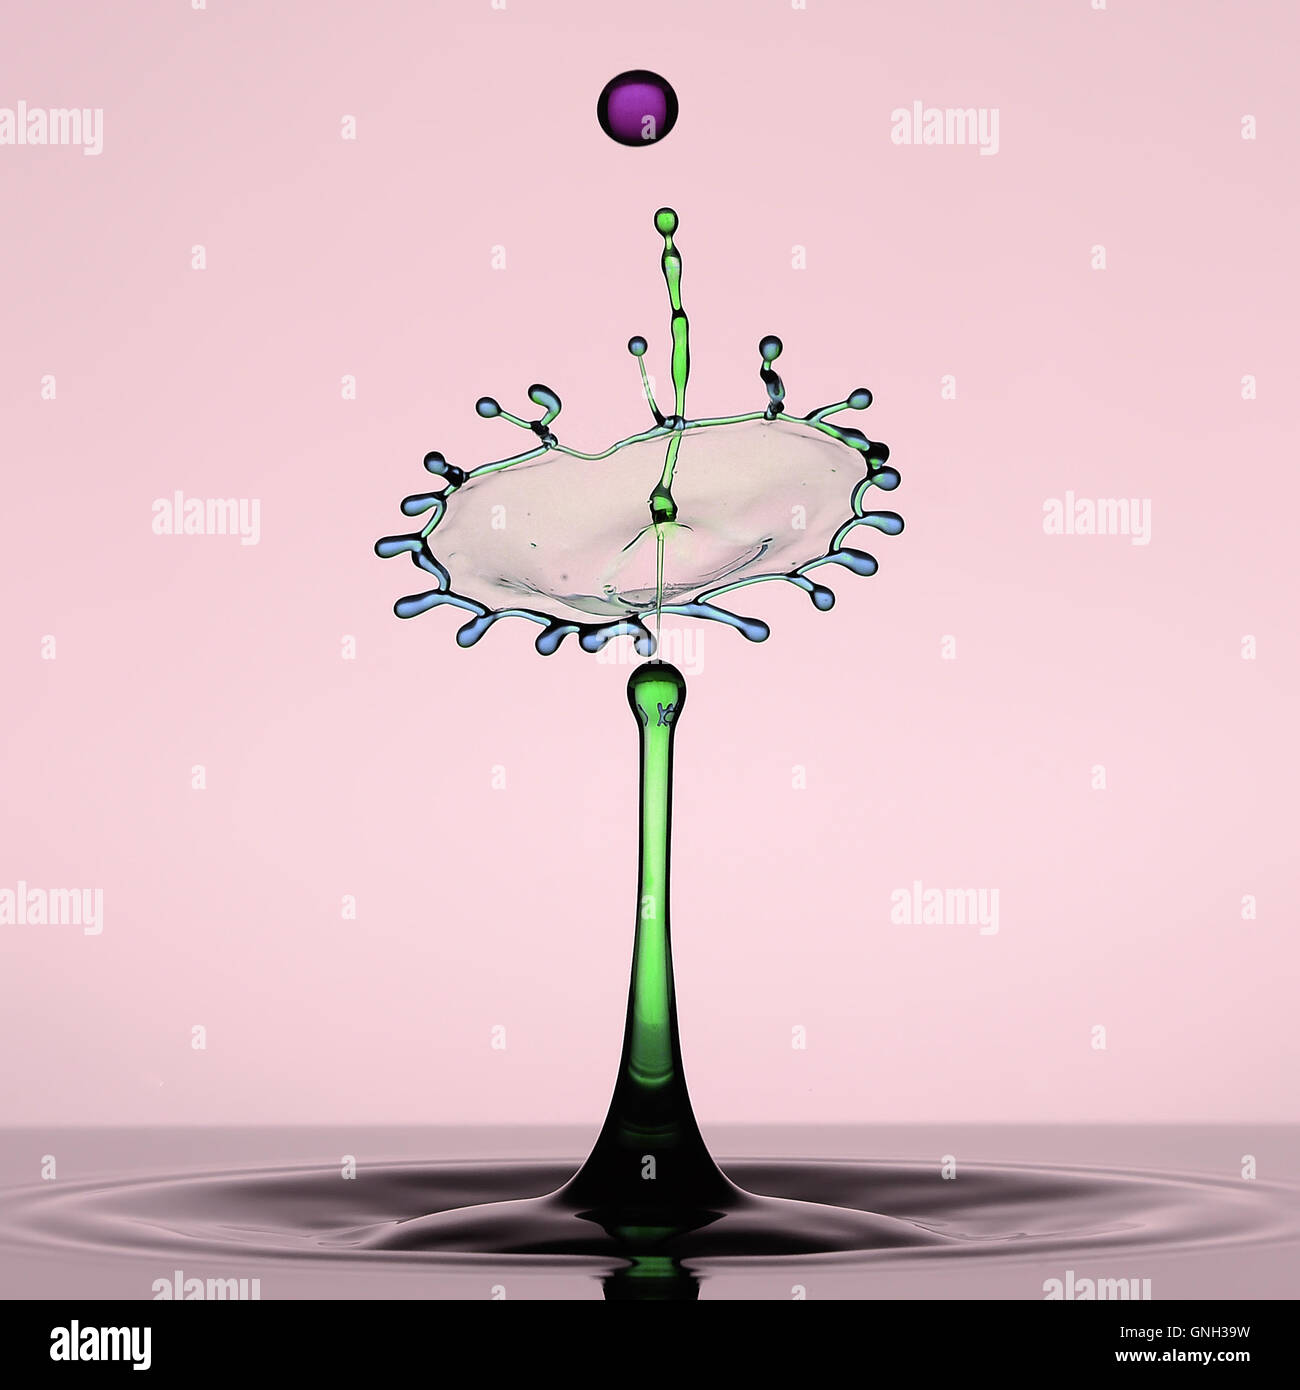 Multi-colored water droplet and splash crown - Stock Image